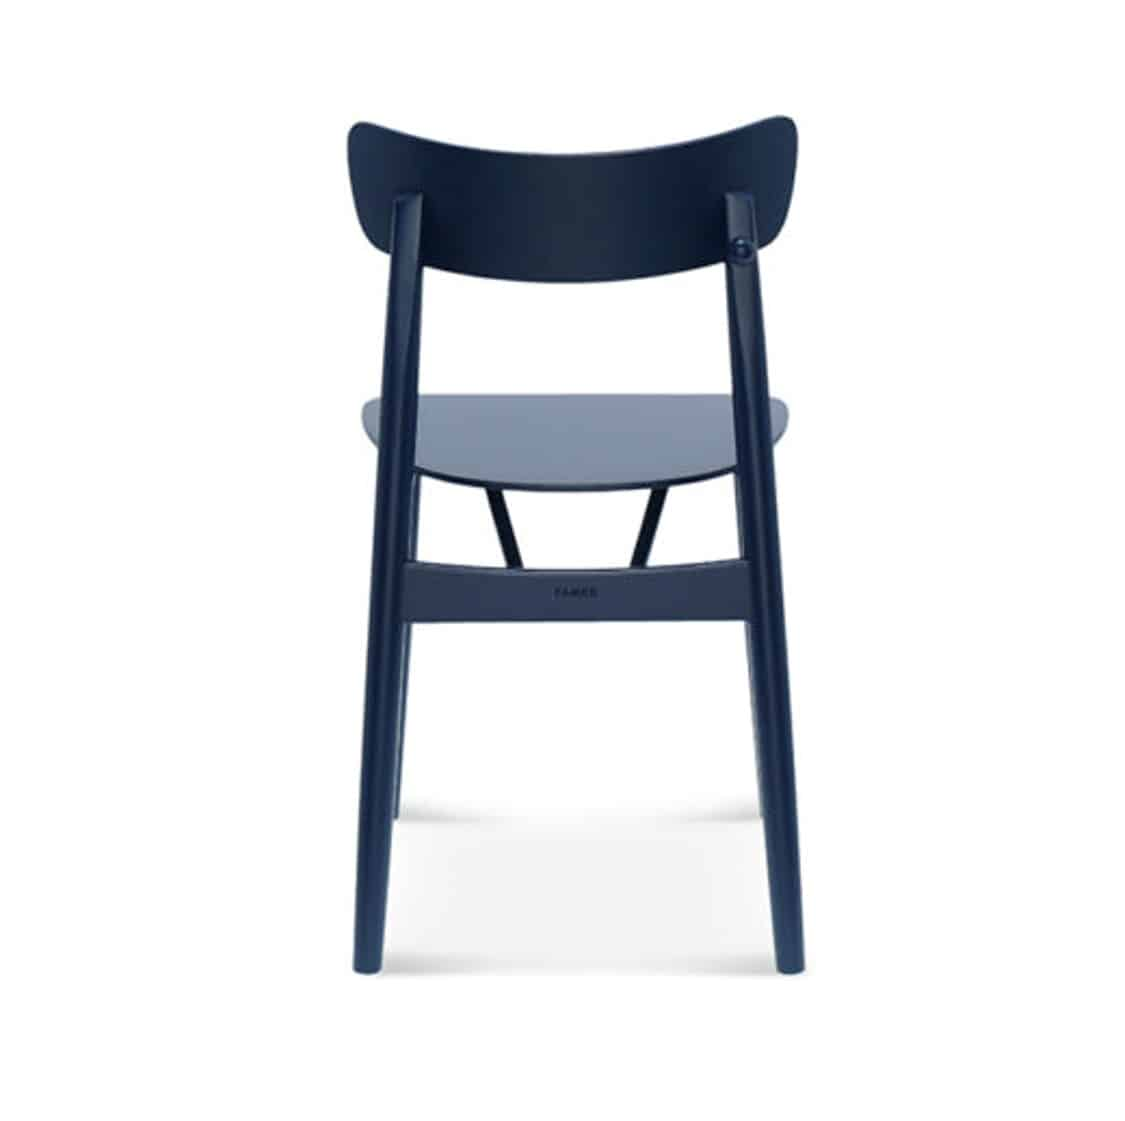 Chance curved back wood restaurant chair DeFrae contract furniture back view